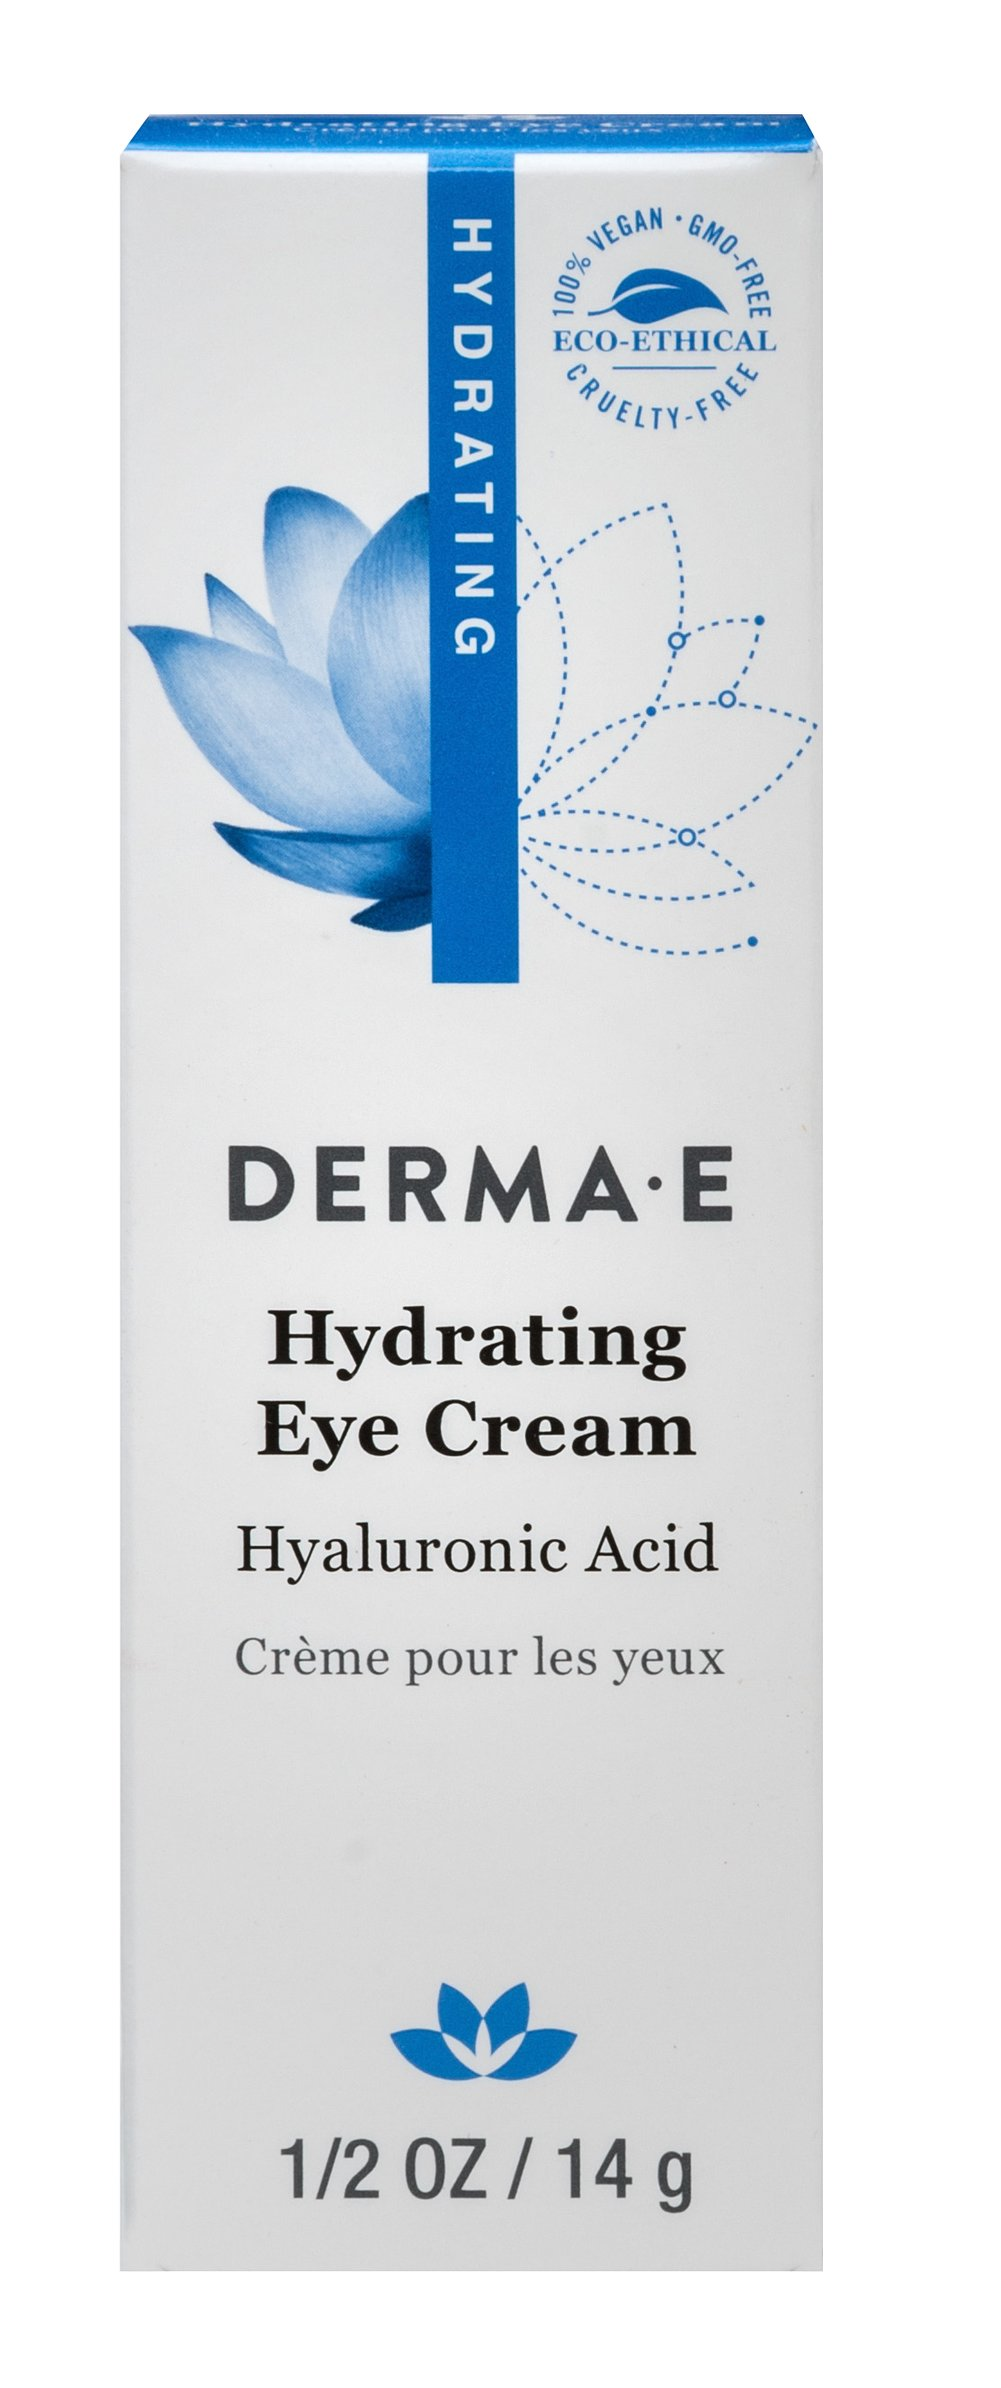 Derma E® Hyaluronic & Pycnogenol® Eye Crème <p><b>From the Manufacturer's Label: </p></b><p>Pycnogenol® is a super antioxidant 50 times more powerful than Vitamin E.</p>  <p>Hyaluronic Acid is a naturally occurring substance that firms, tones, and rehydrates skin.</p>  <p>This fragrance free and delicate eye cream dramatically reduces the appearance of fine lines and wrinkles around the eye area.</p>  <p&g